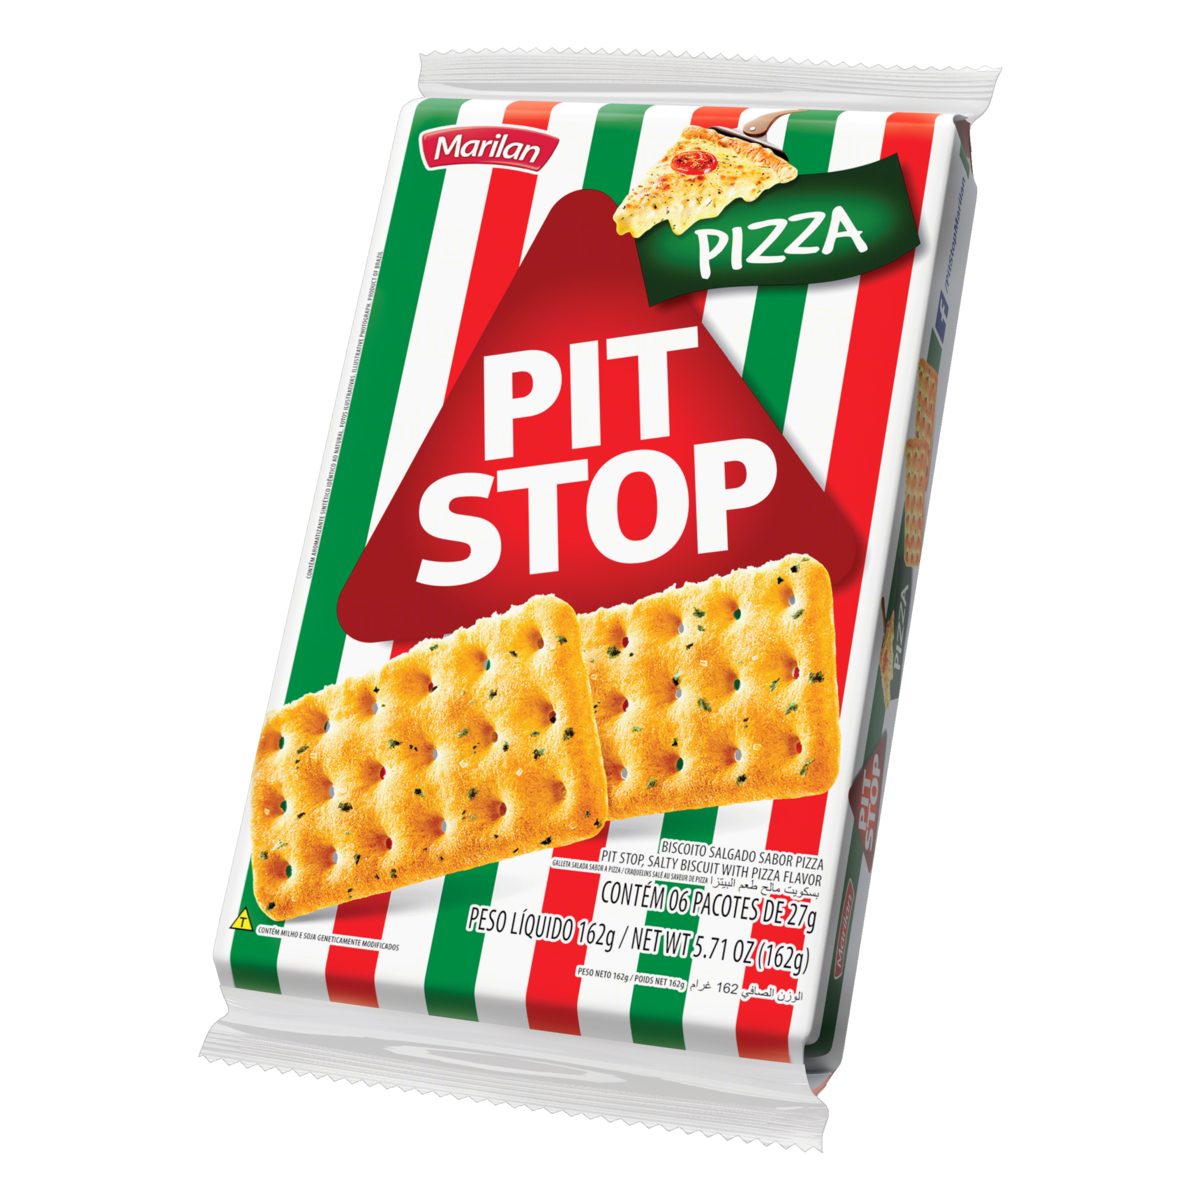 7896003702880 - PACK BISCOITO PIZZA MARILAN PIT STOP PACOTE 162G 6 UNIDADES